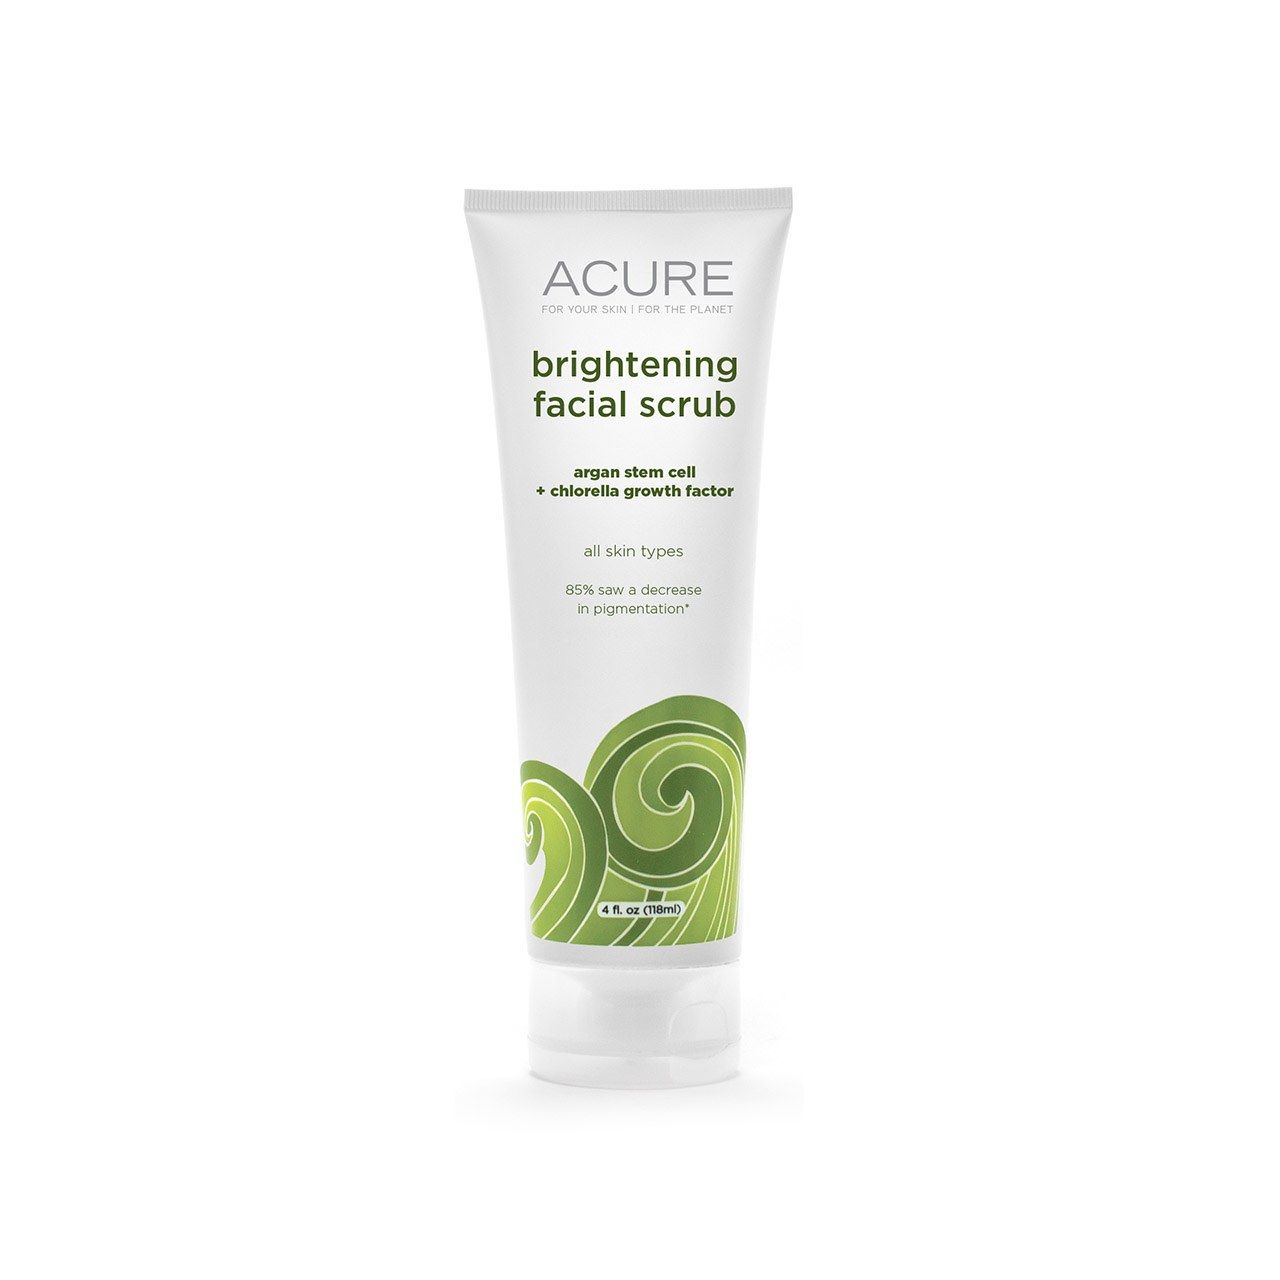 Acure's Brightening Facial Scrub Is Safe For Sensitive